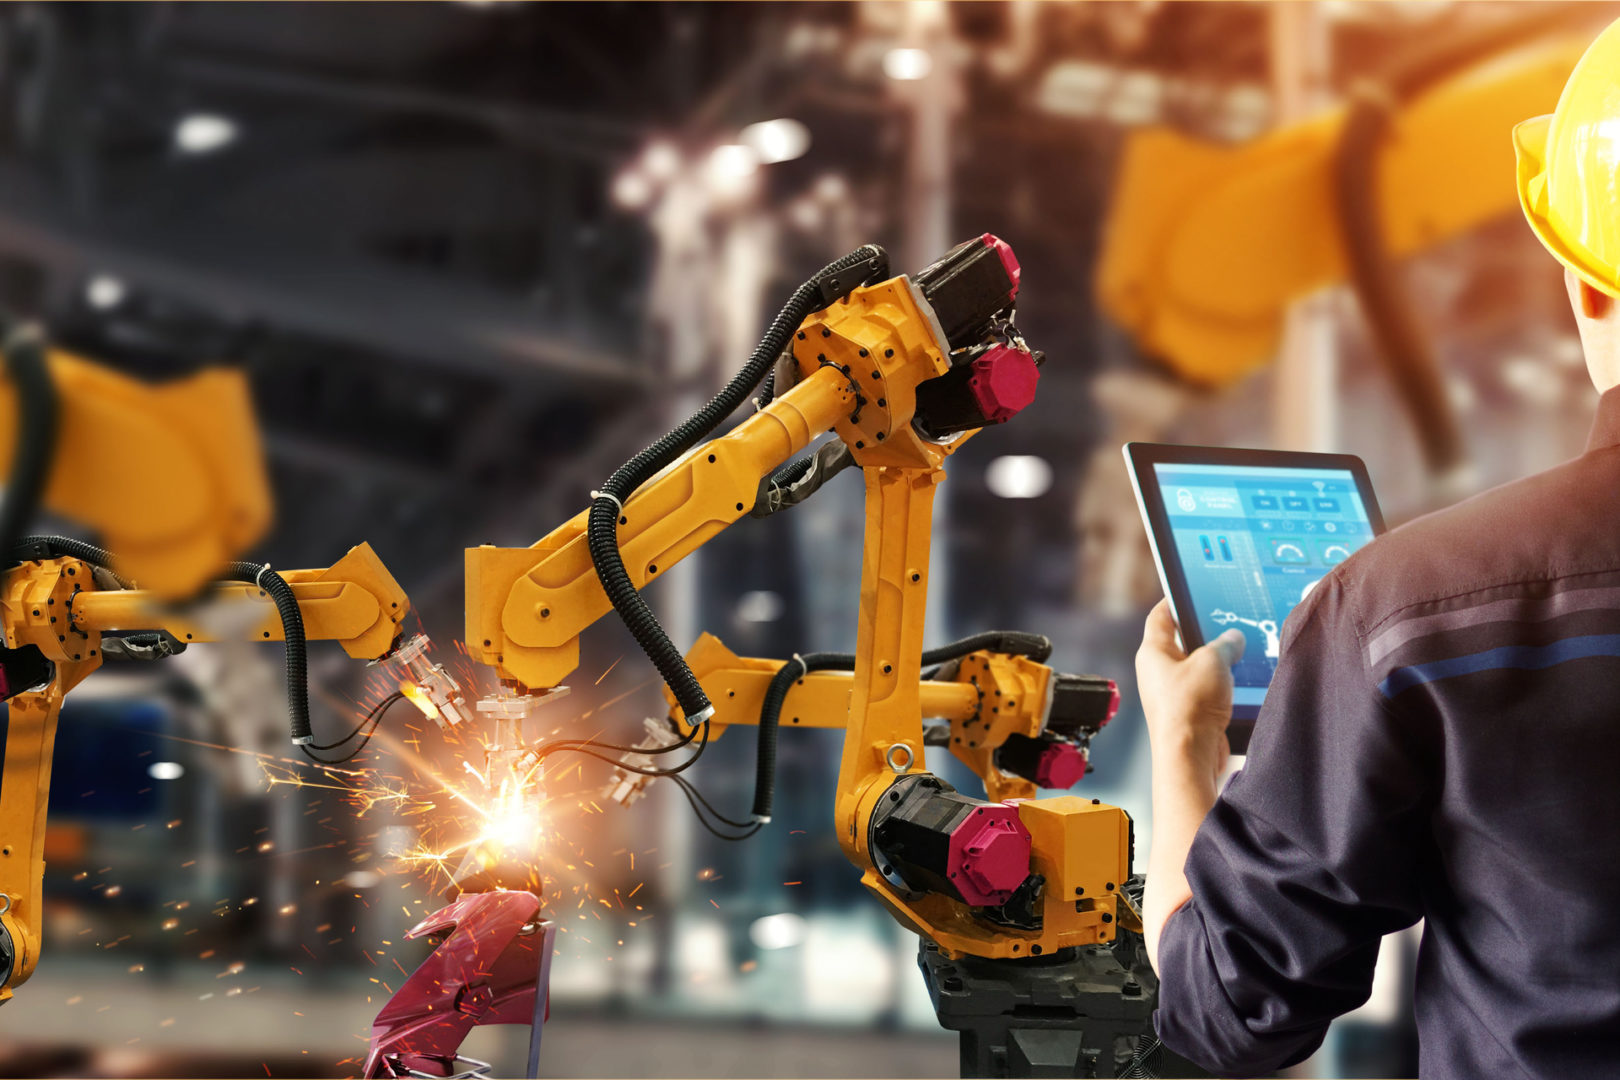 Engineer check and control welding robotics automatic arms machine in intelligent factory